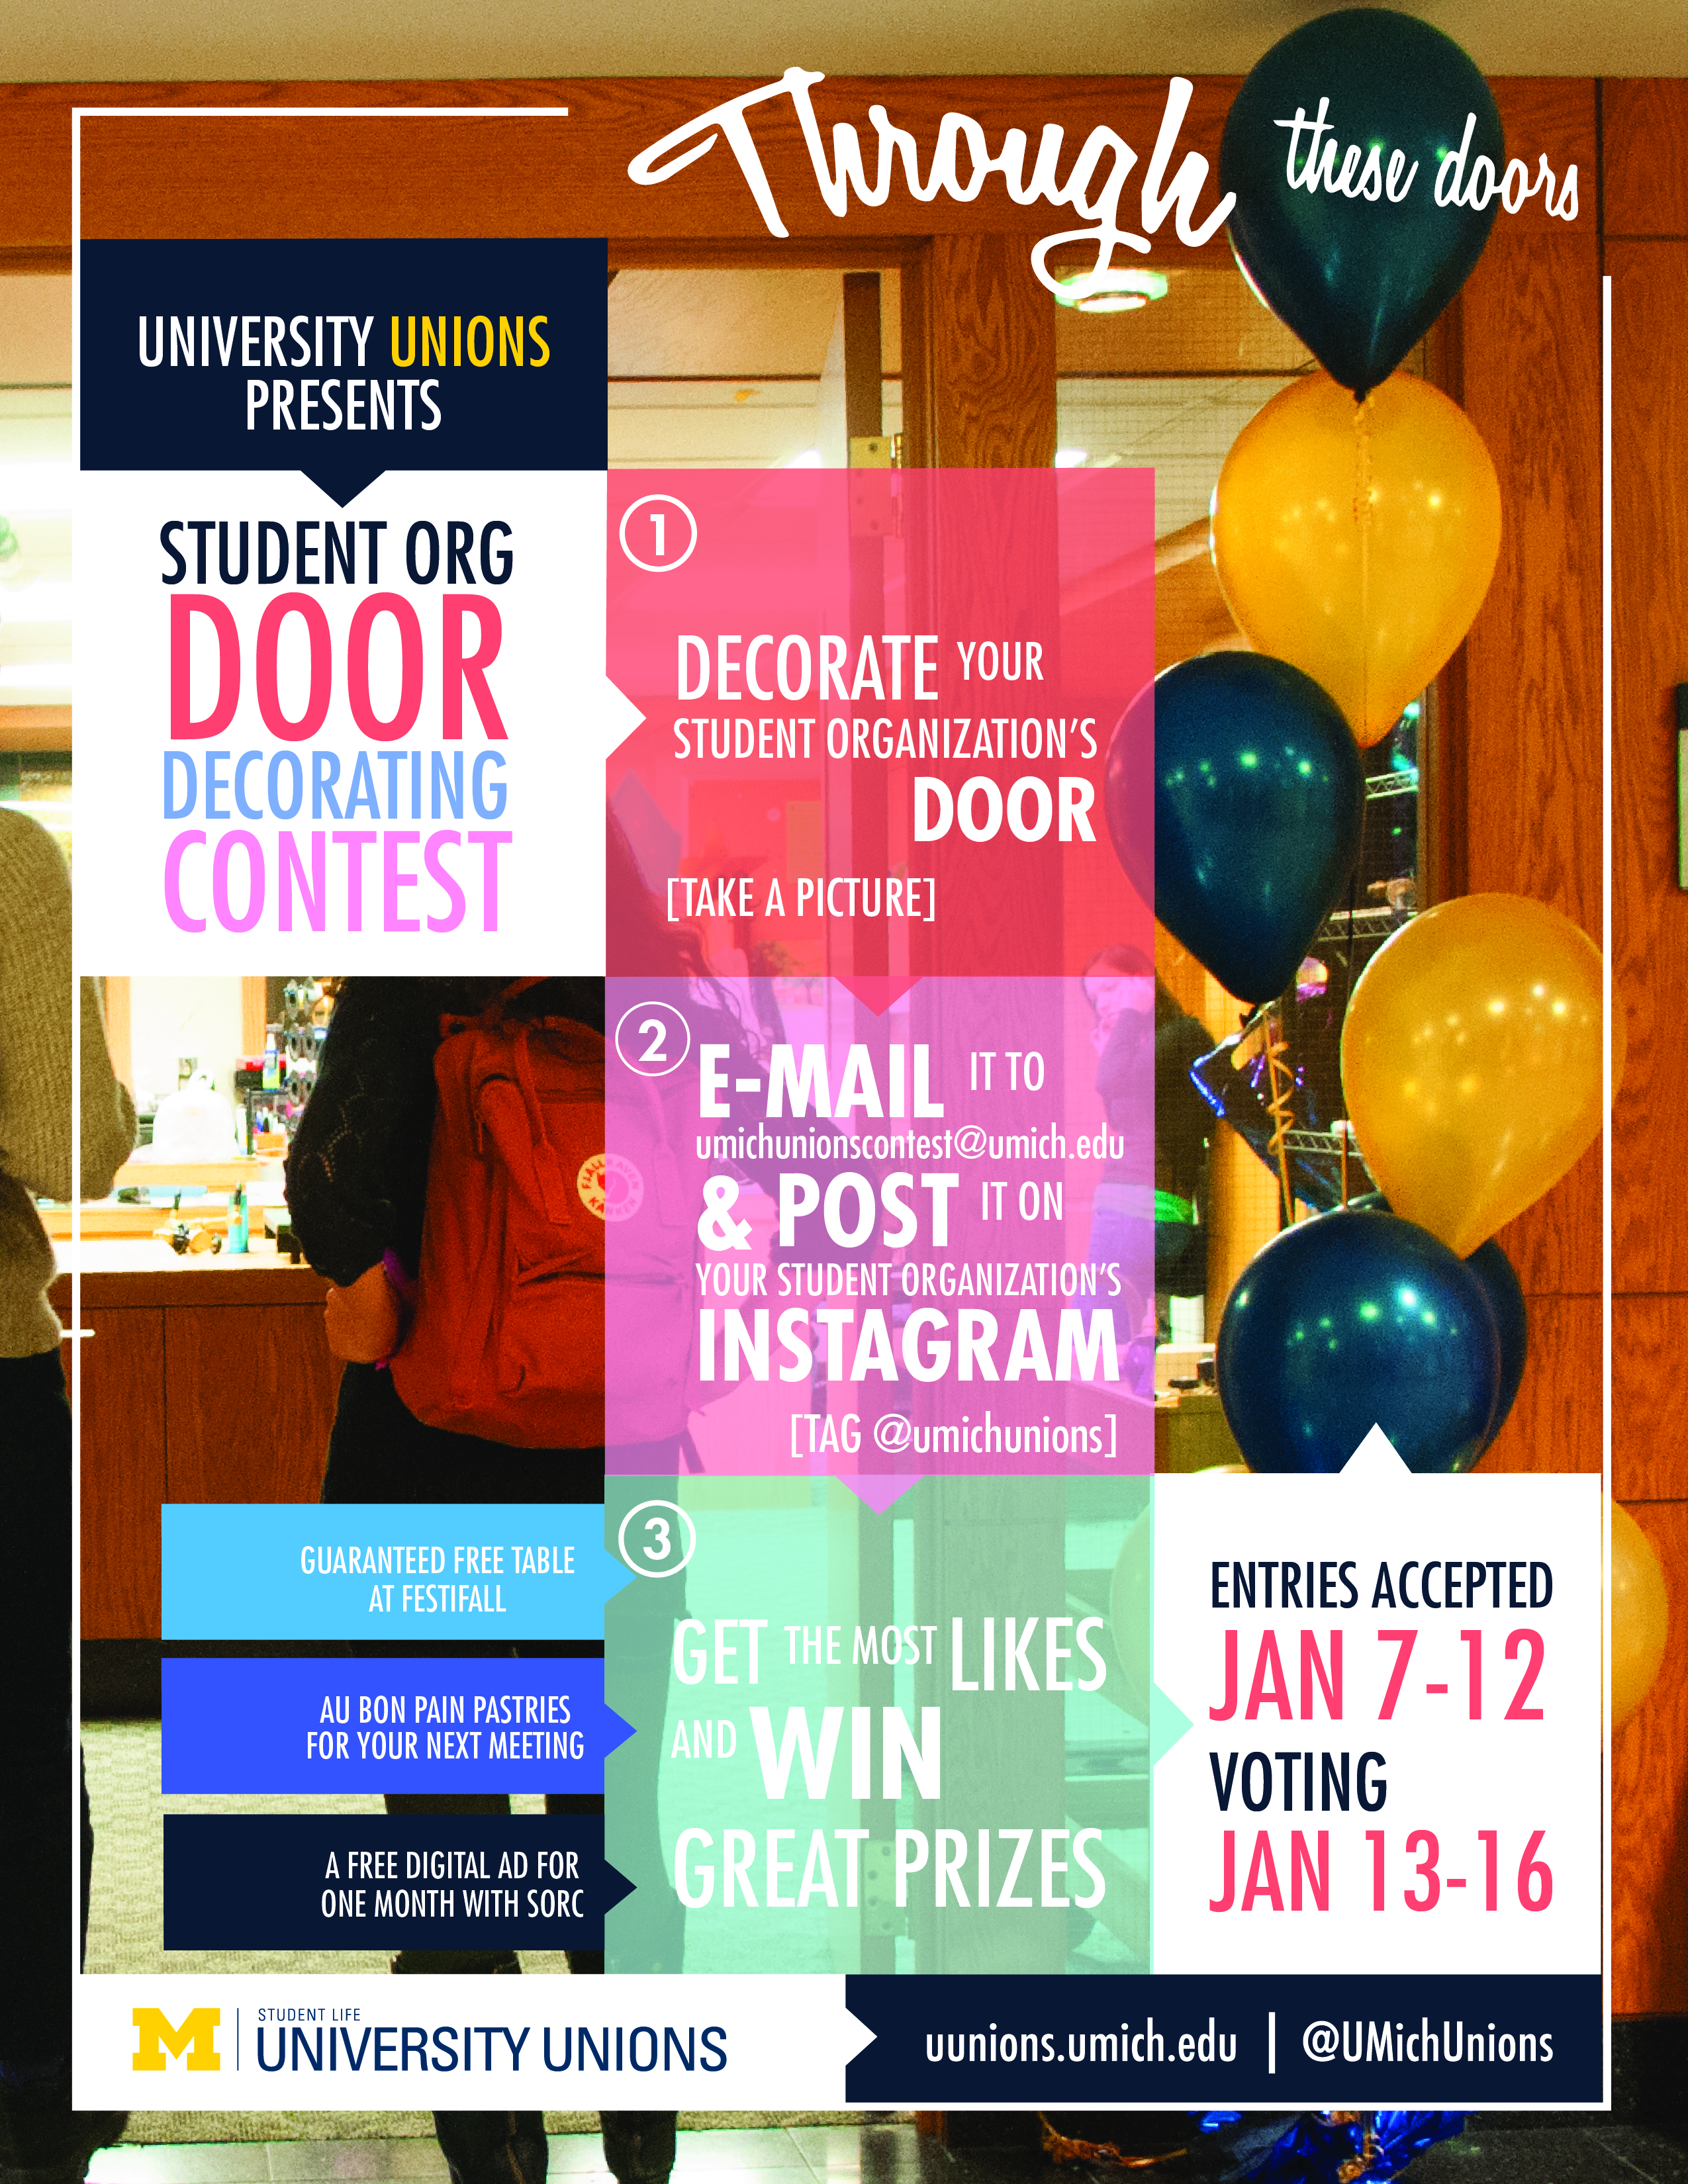 Student Org Door Decorating Contest flyer  sc 1 st  Center for C&us Involvement - University of Michigan & Student Organization Door Decorating Contest | Campus Involvement